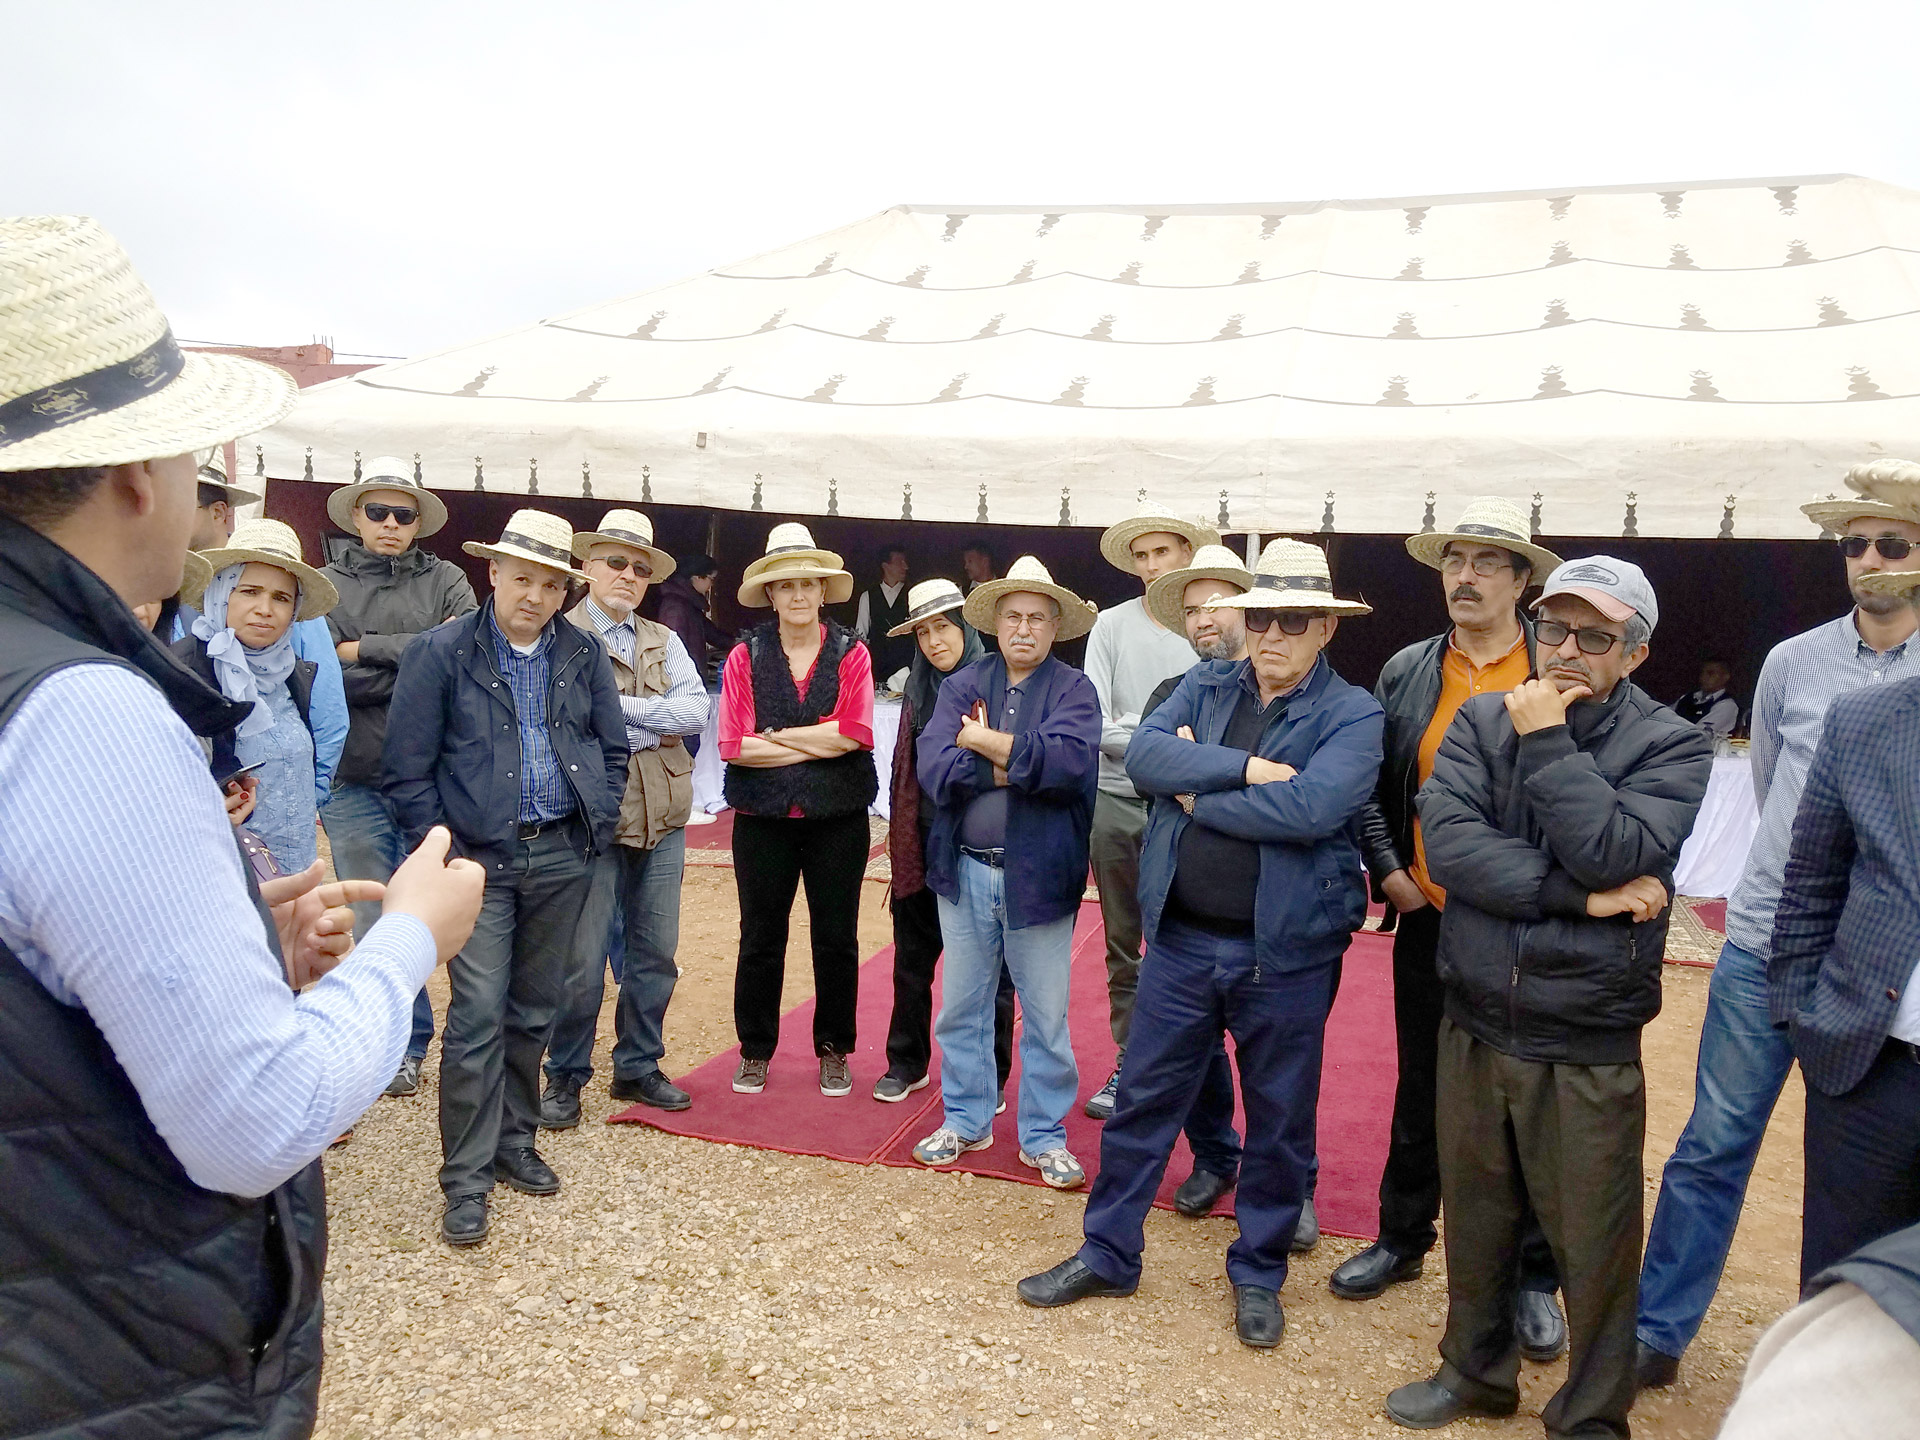 Big hit for the Organic-Farming Day of Beni Mellal